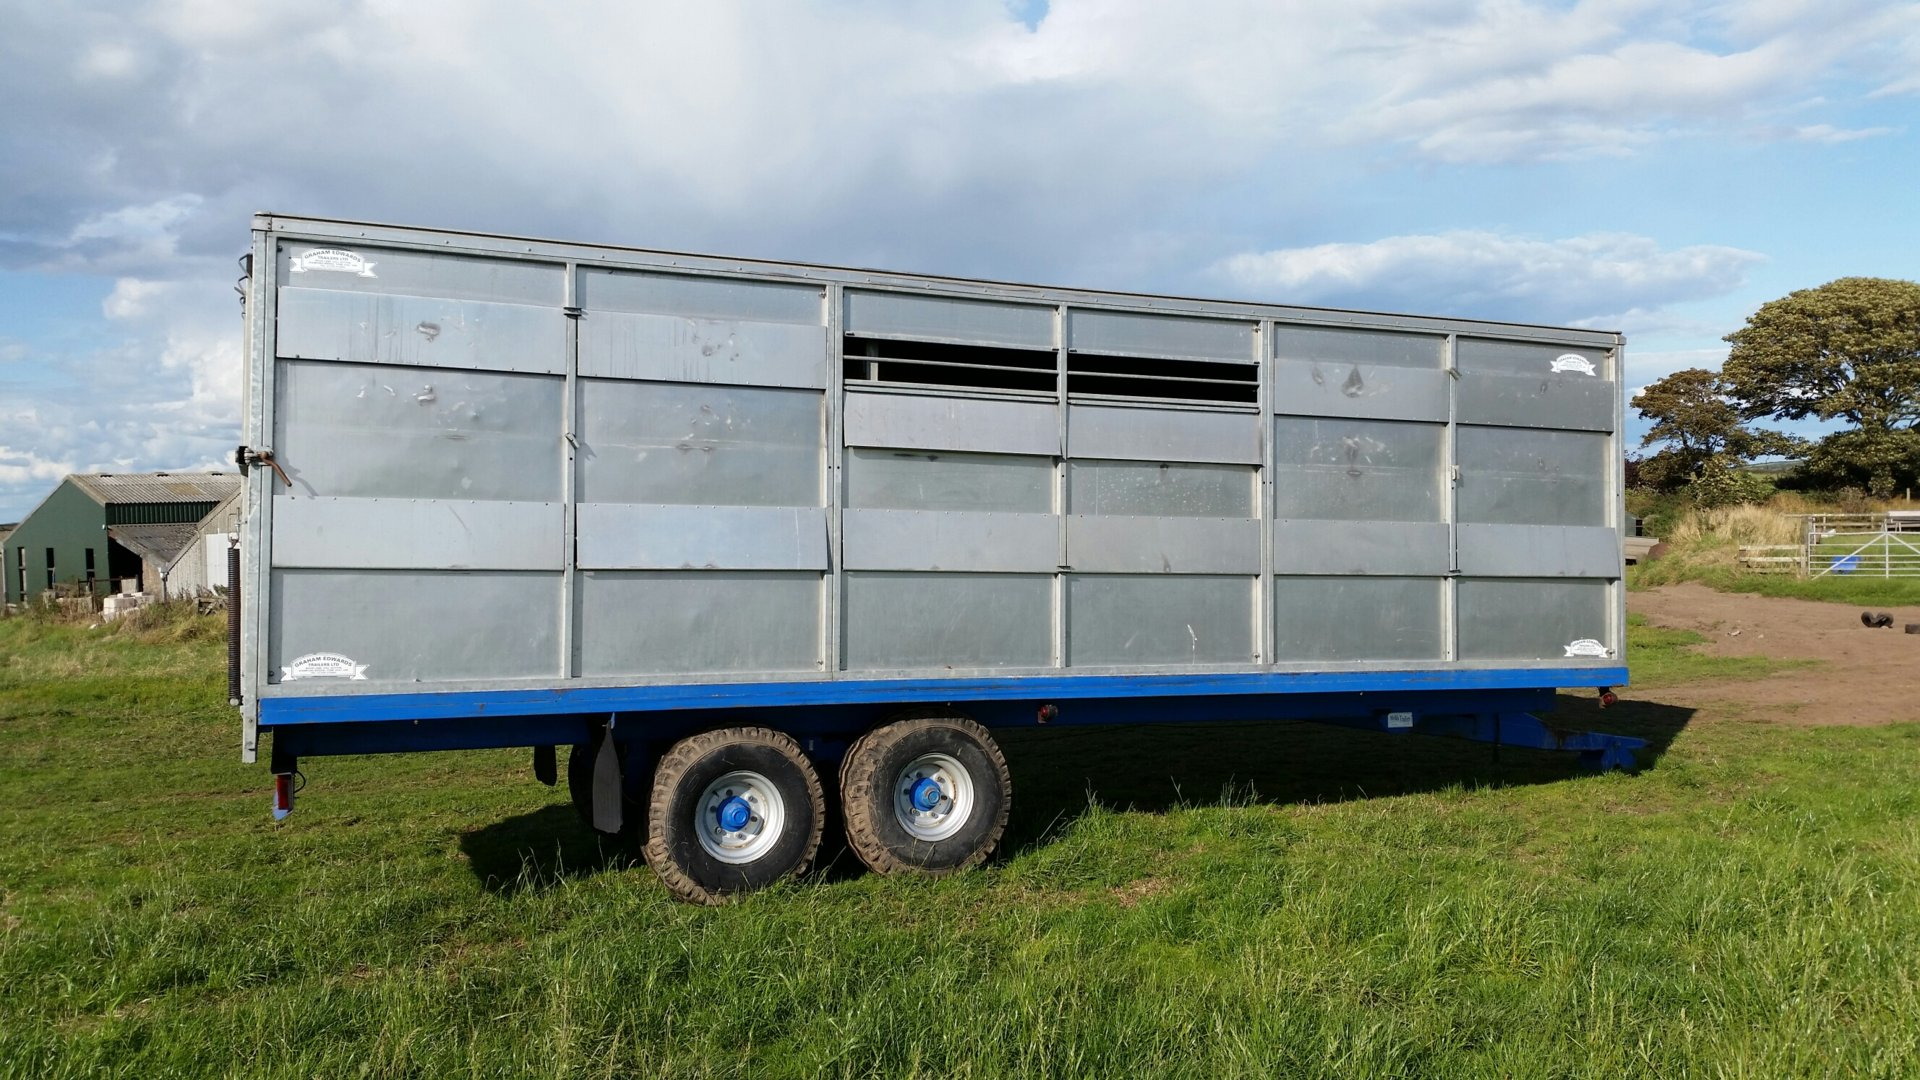 Tractor Trailer Stock : Graham edwards tractor drawn livestock trailer the